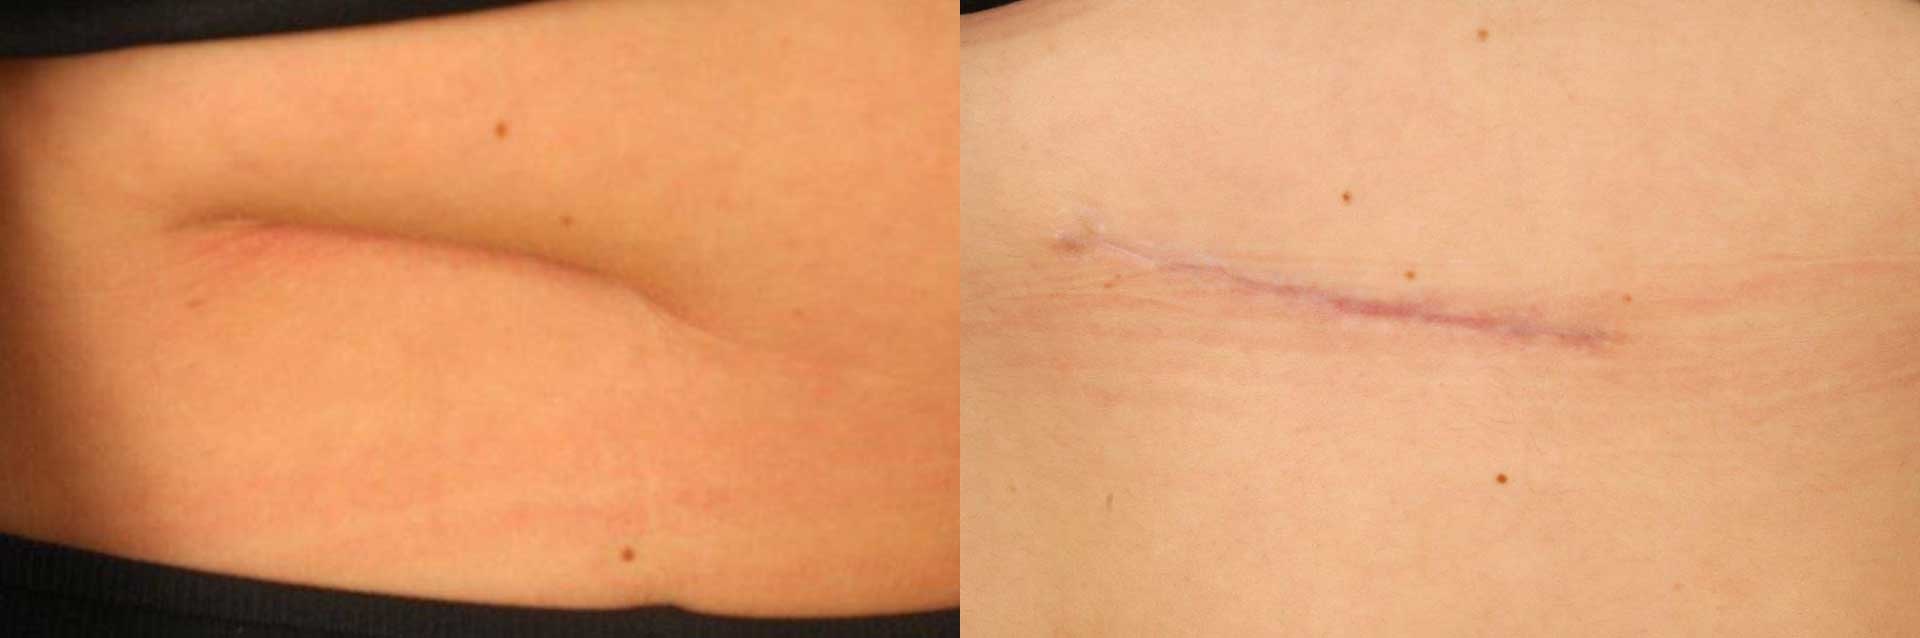 Keloids And Scars On Skin Book Your Free Consultation